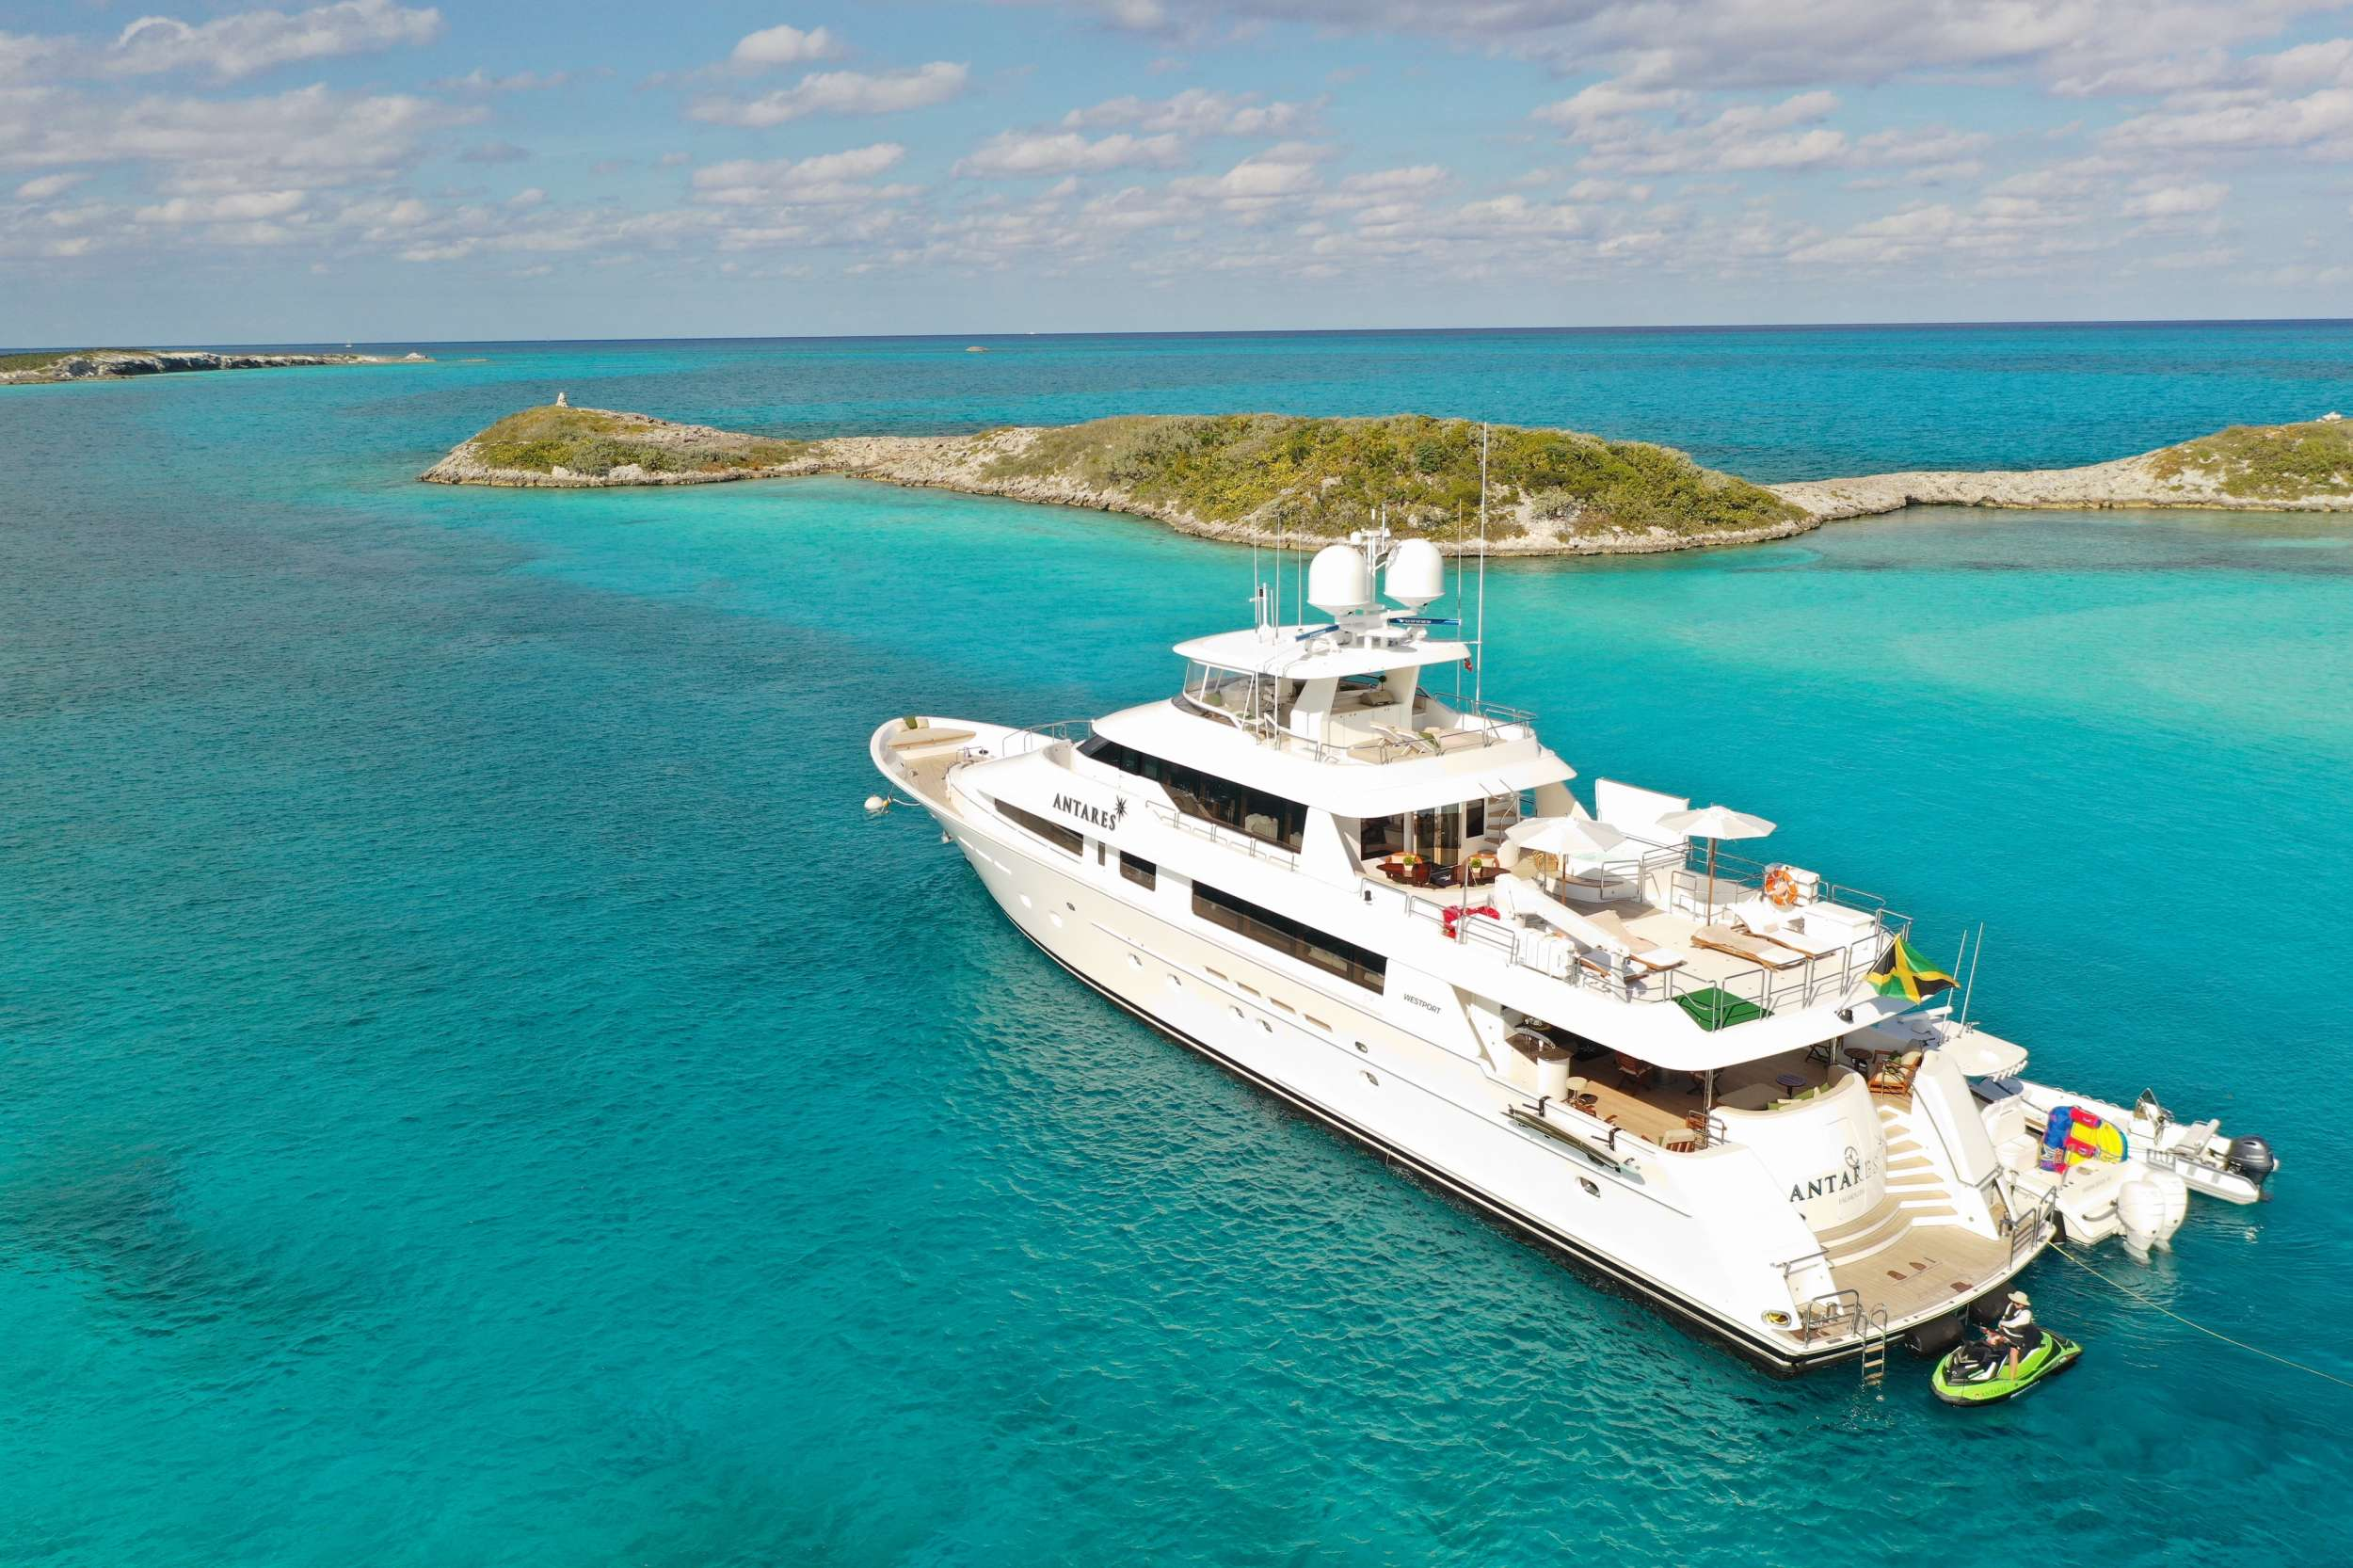 Charter with ANTARES on compassyachtcharters.com